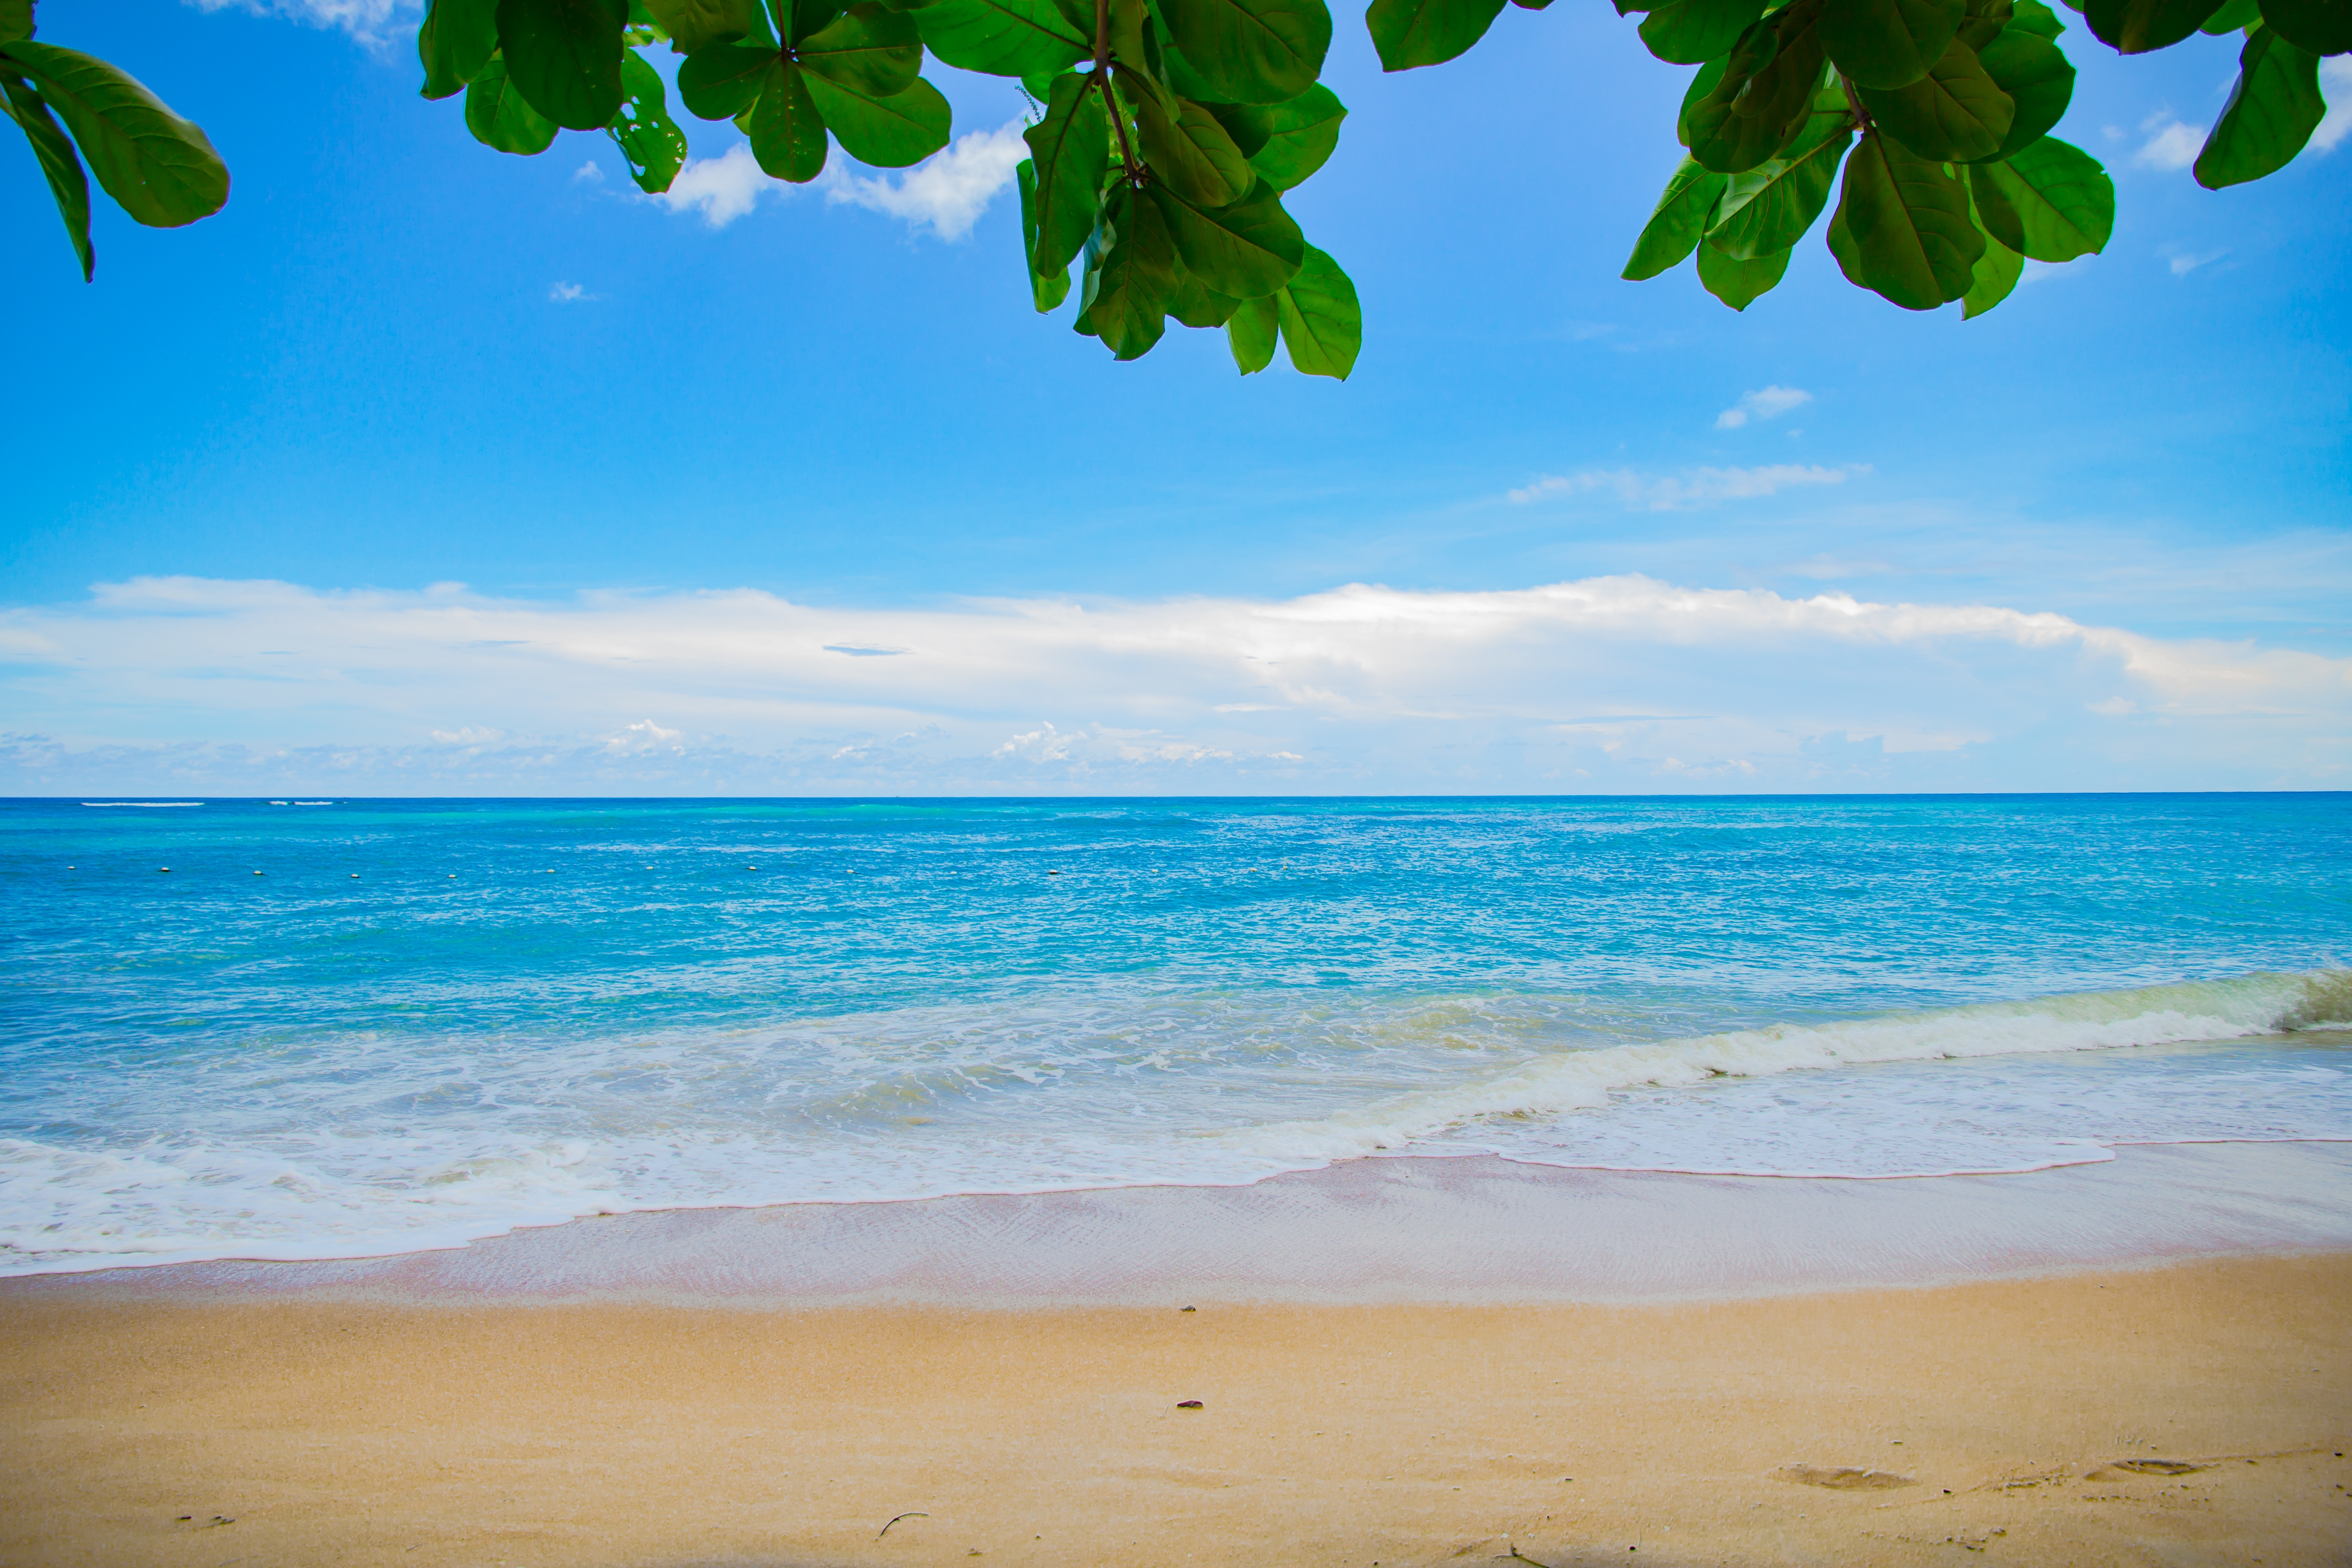 Beach Free Images